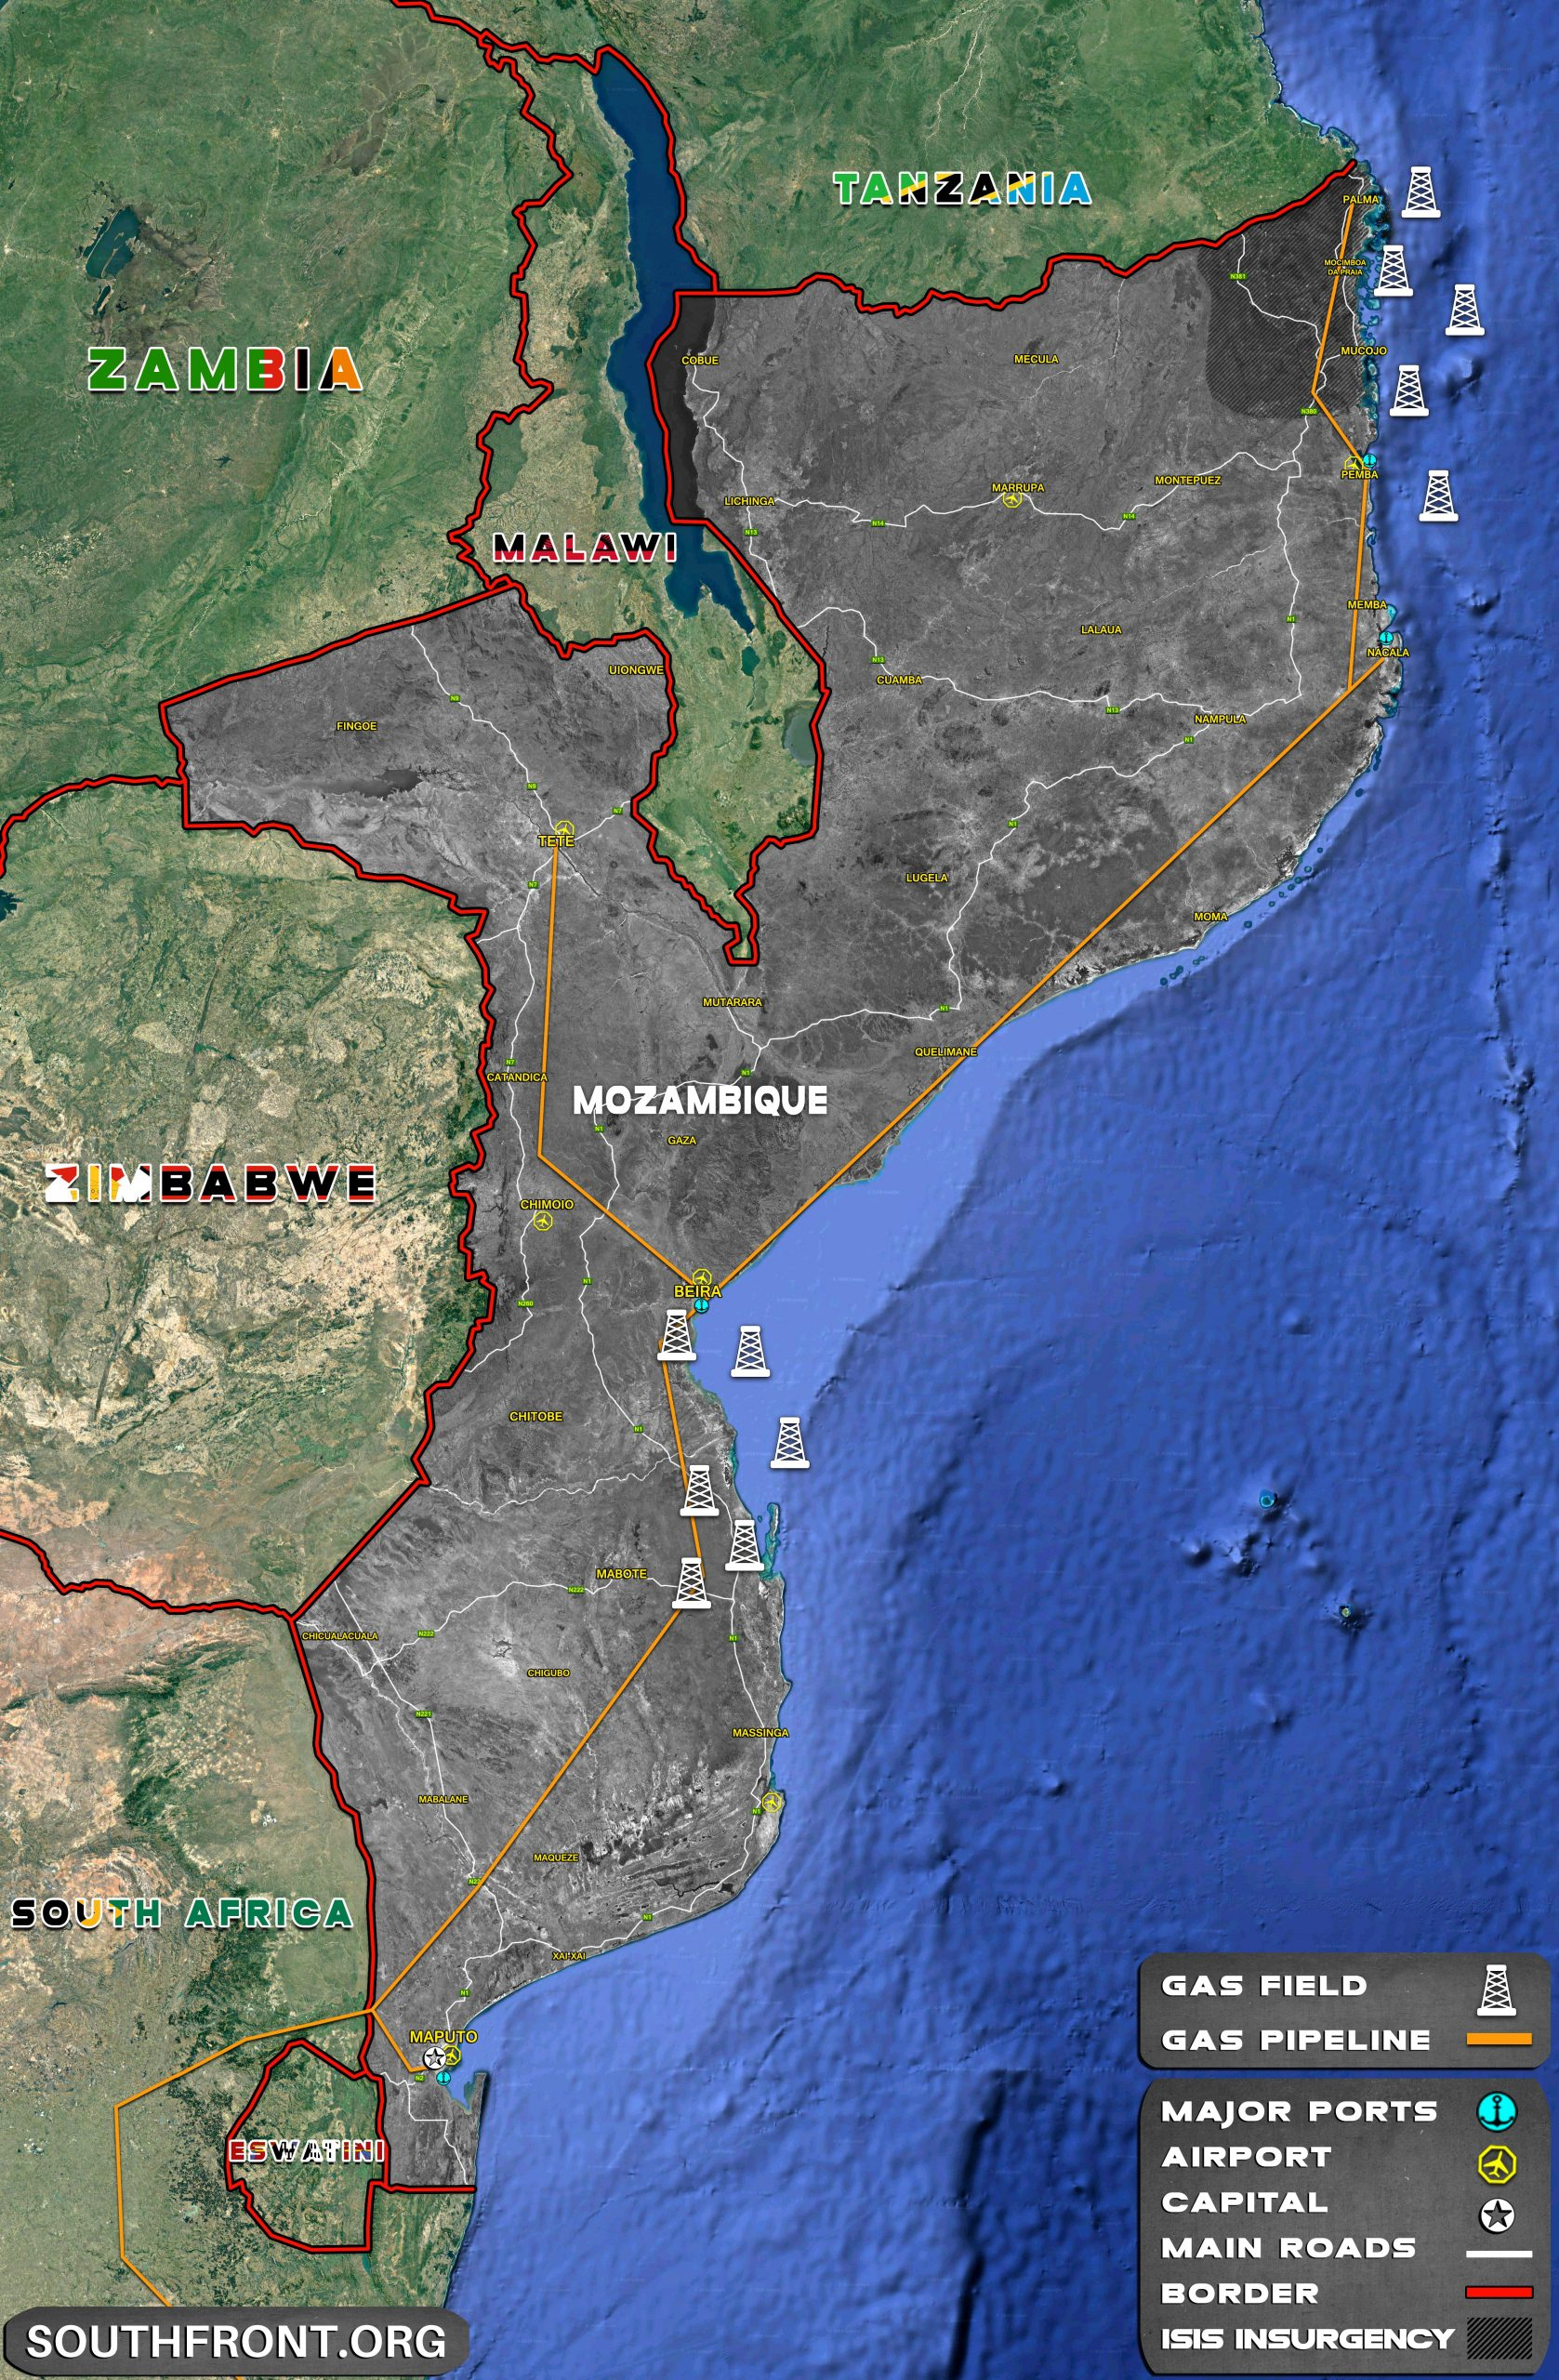 EU To Support Mozambique Struggle Against Militants In Northern Region